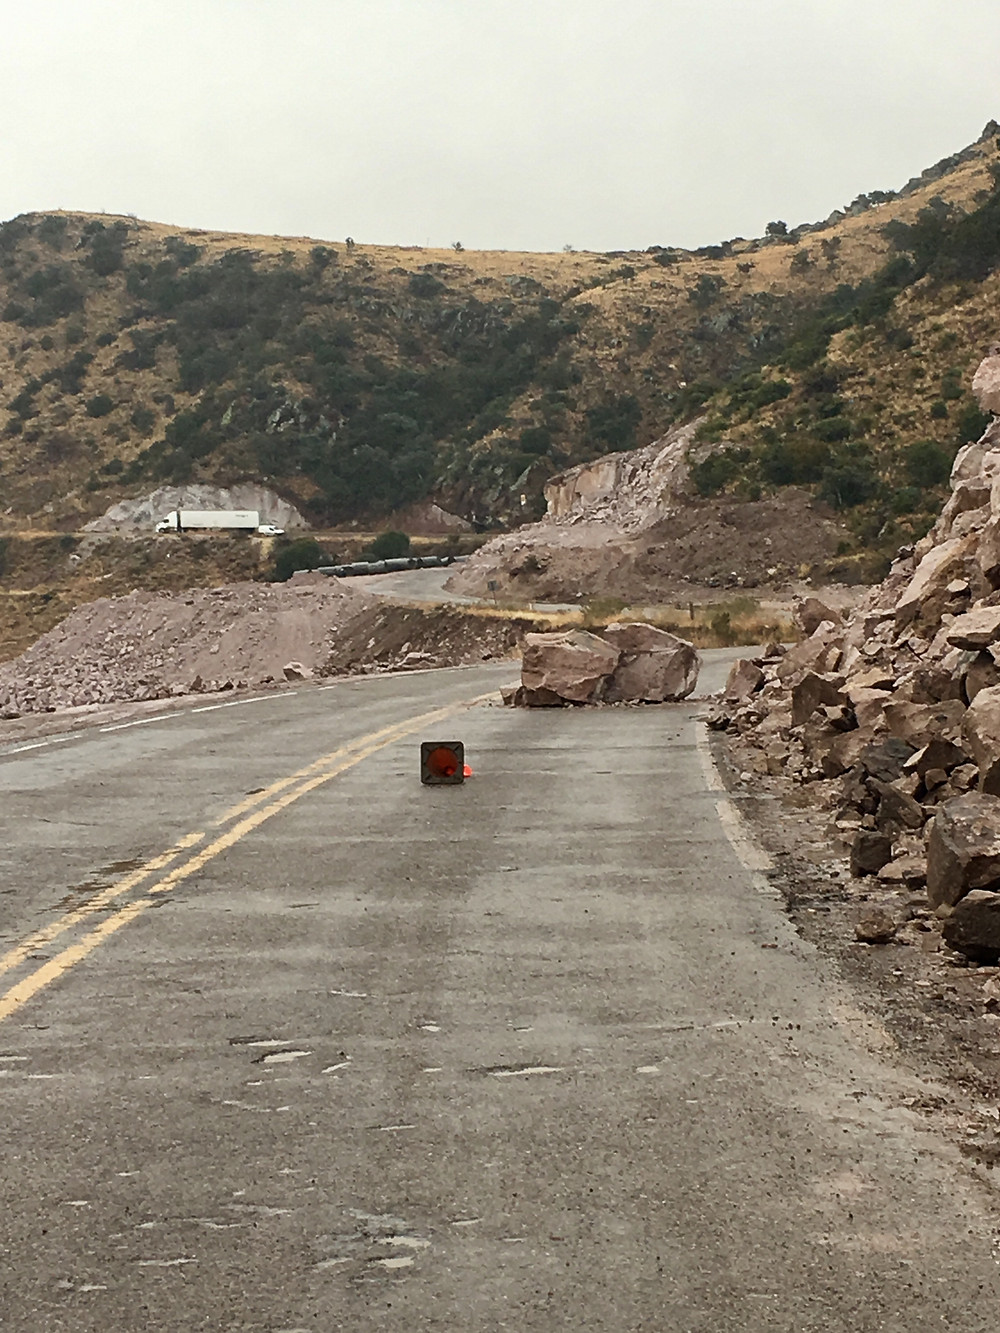 blocked road in Chihuahua, Mexico